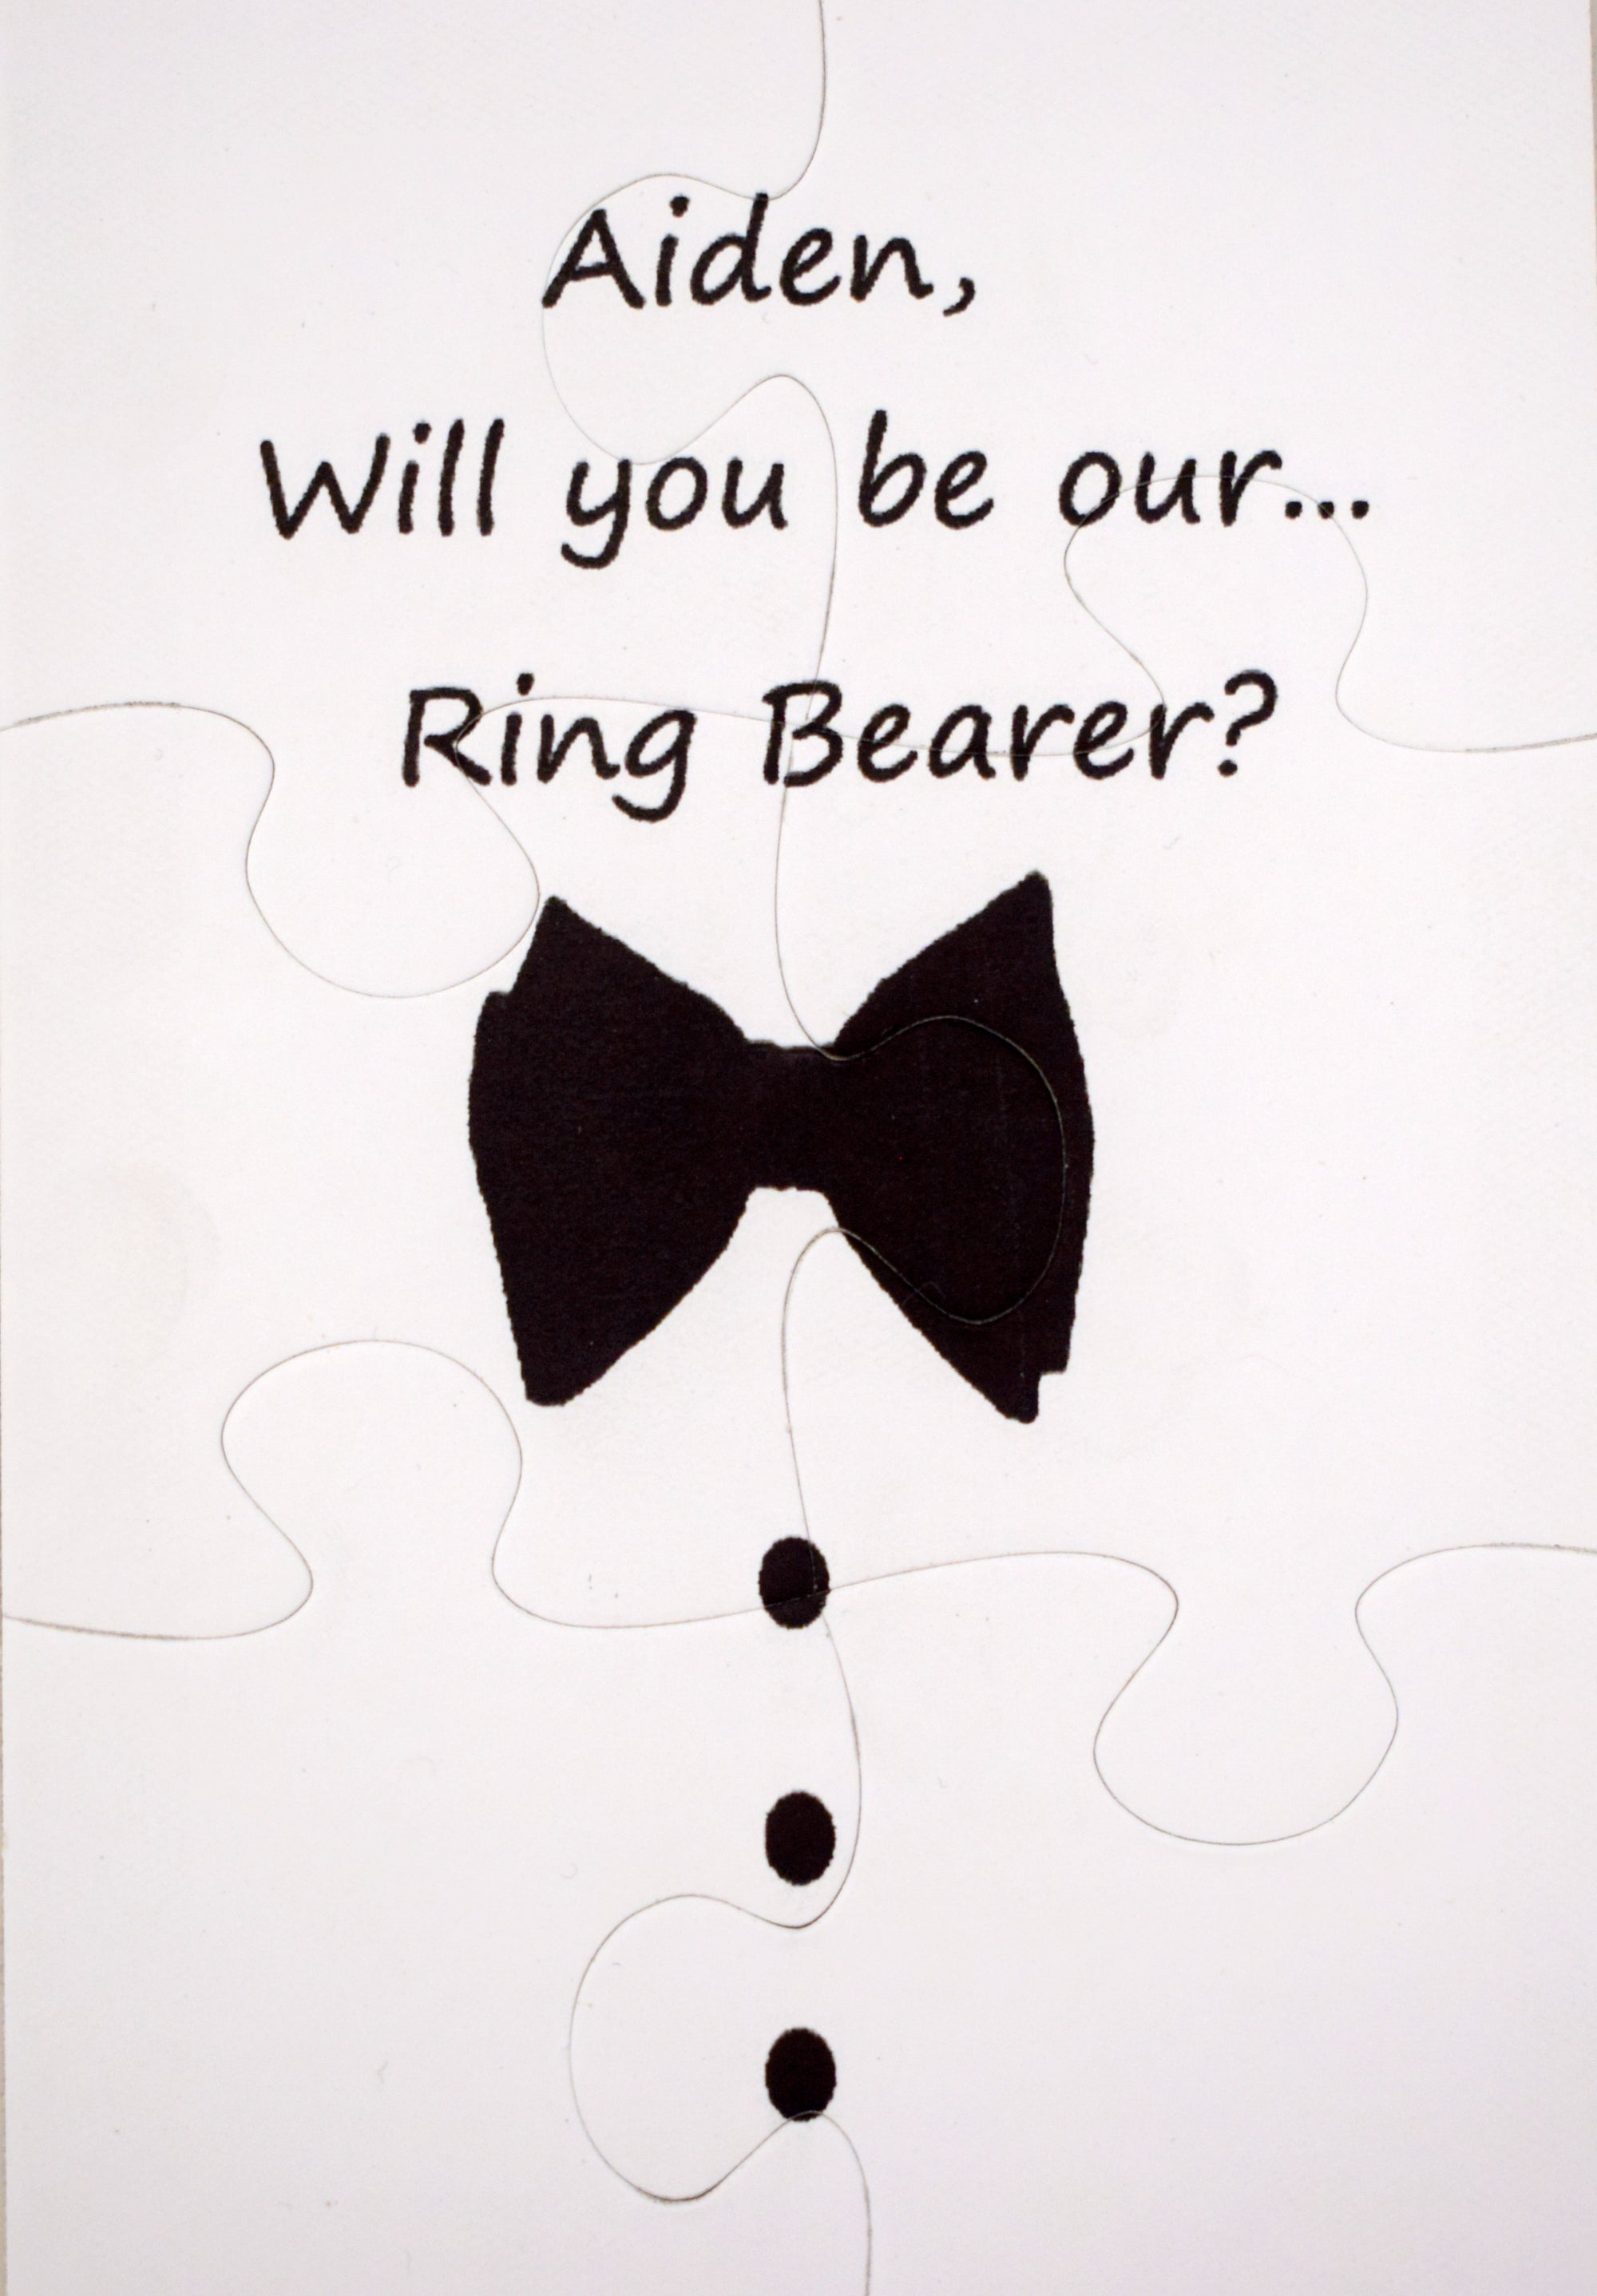 Ring Bearer Invitation Keepsake jigsaw puzzle.  Asky your ring bearer to be in wedding - The Missing Piece Puzzle Company